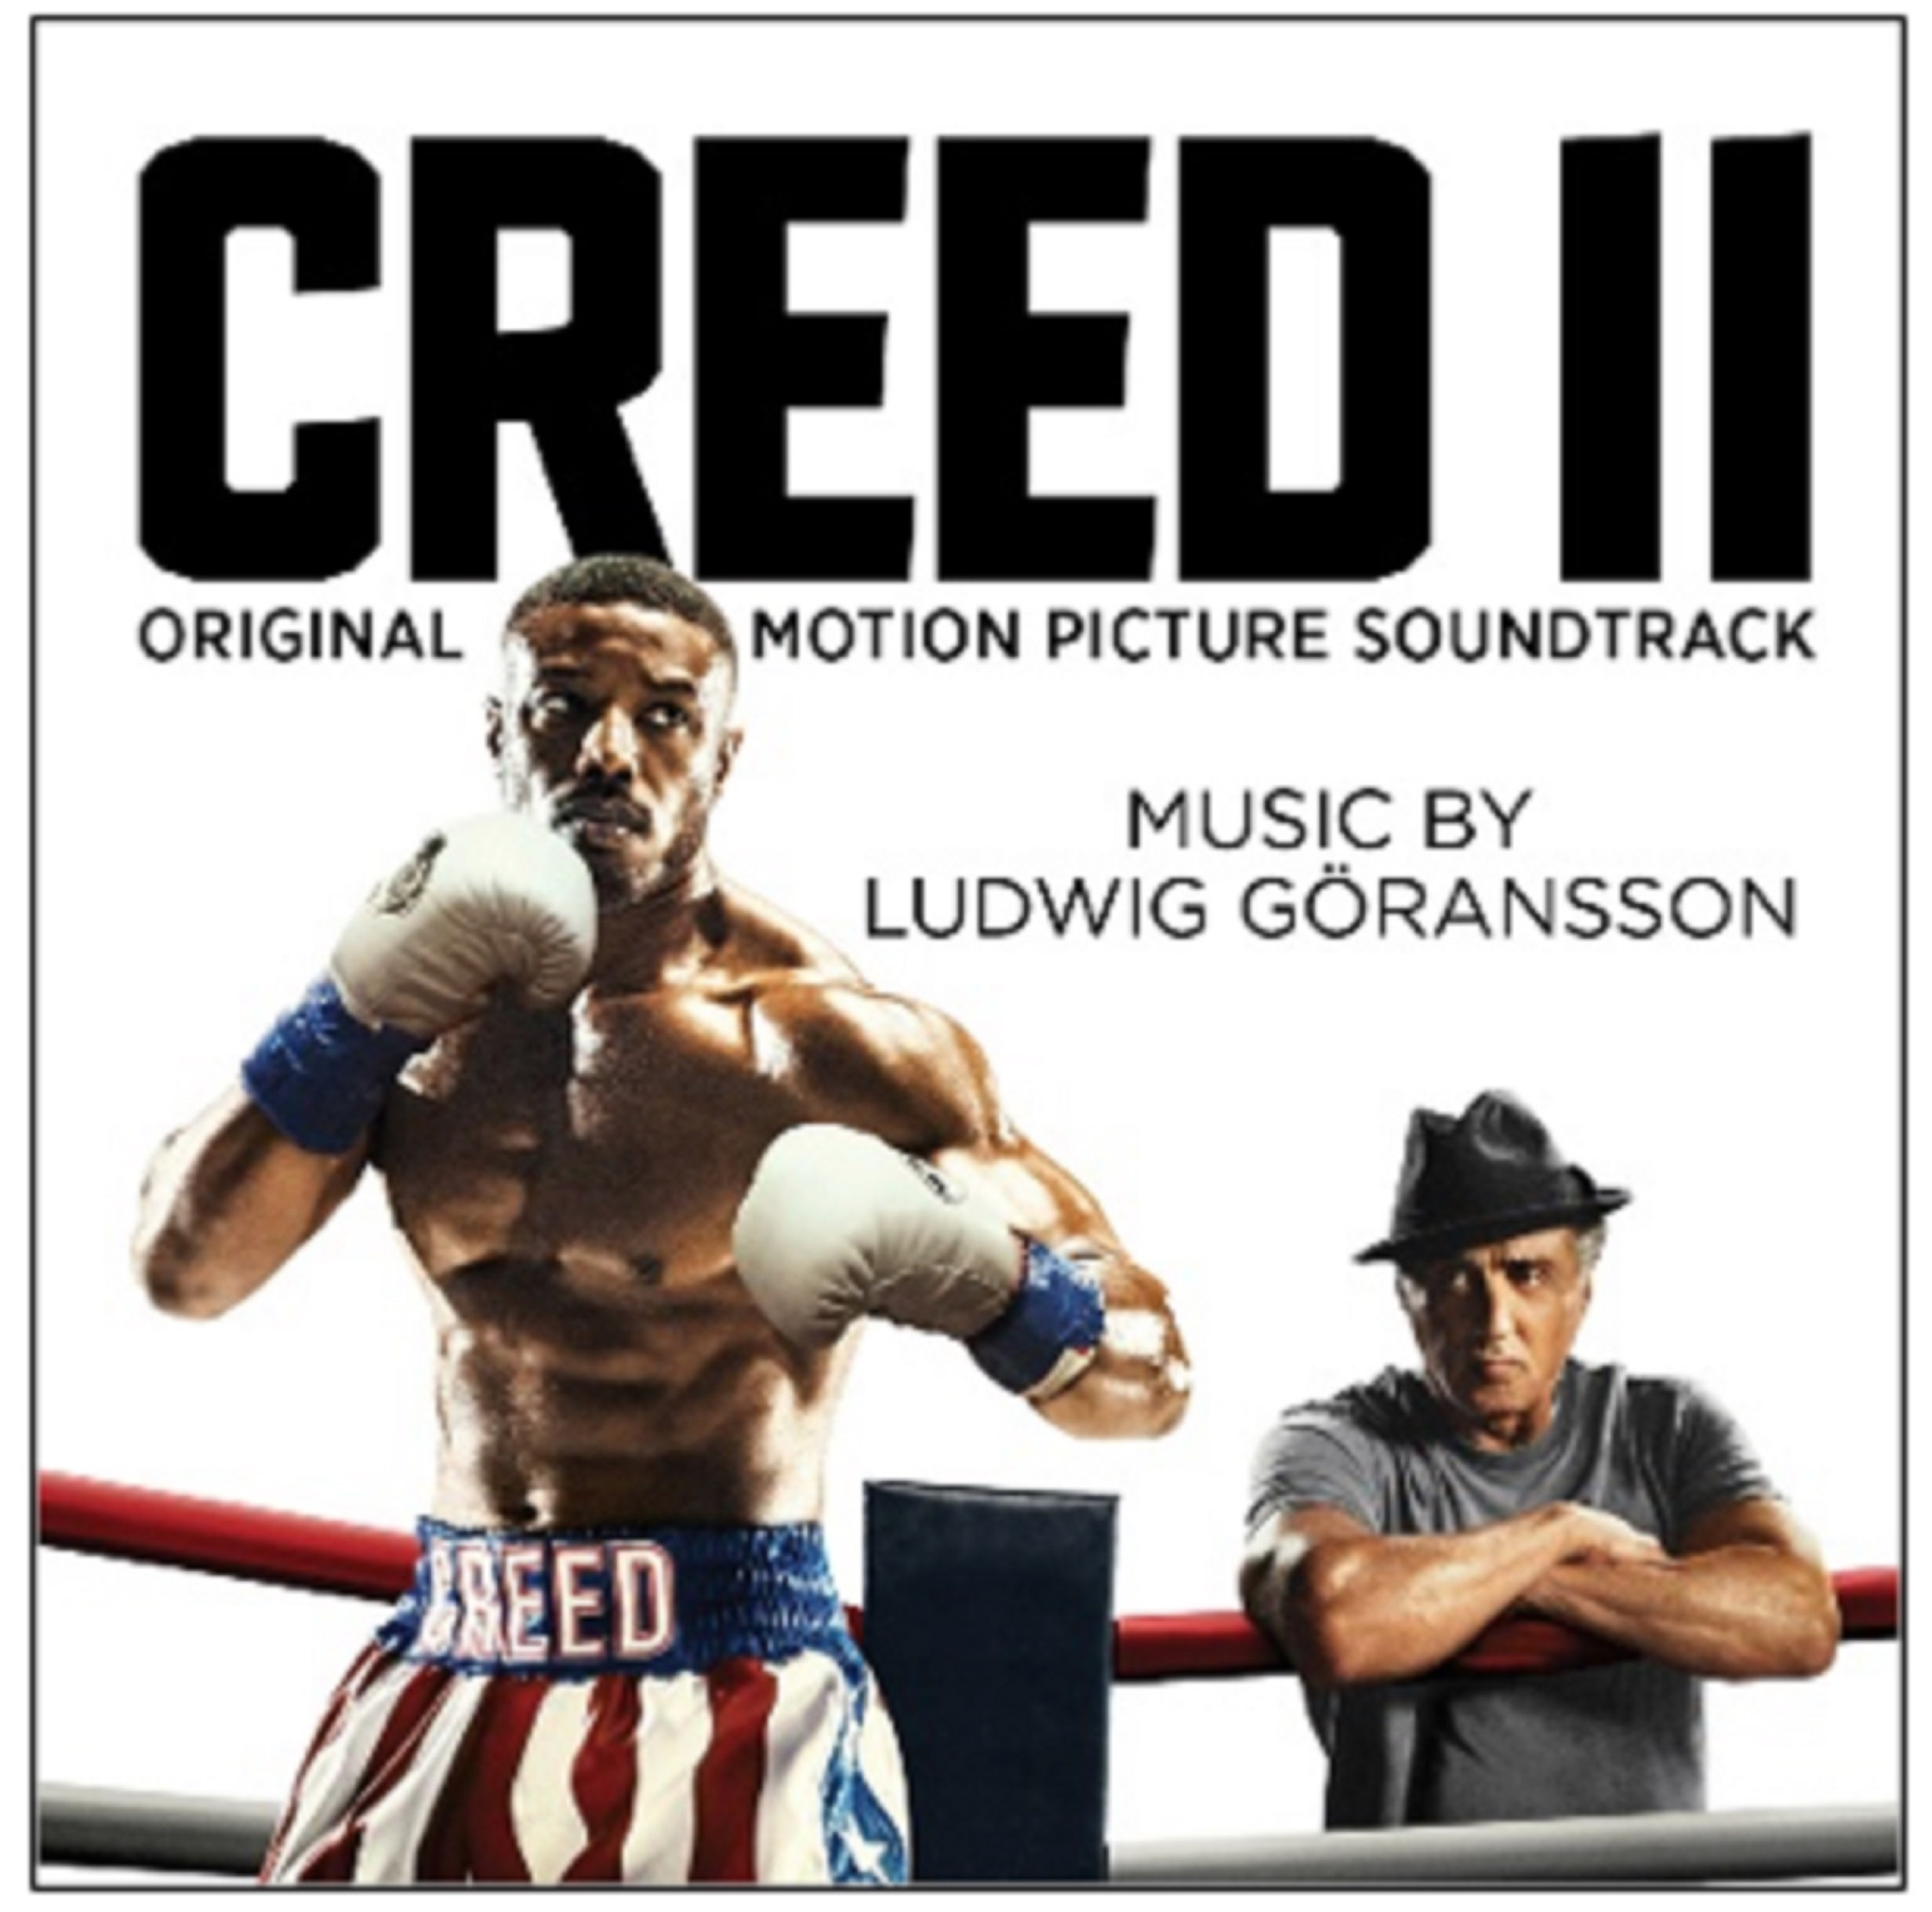 'Creed II' Original Motion Picture Soundtrack Out Now